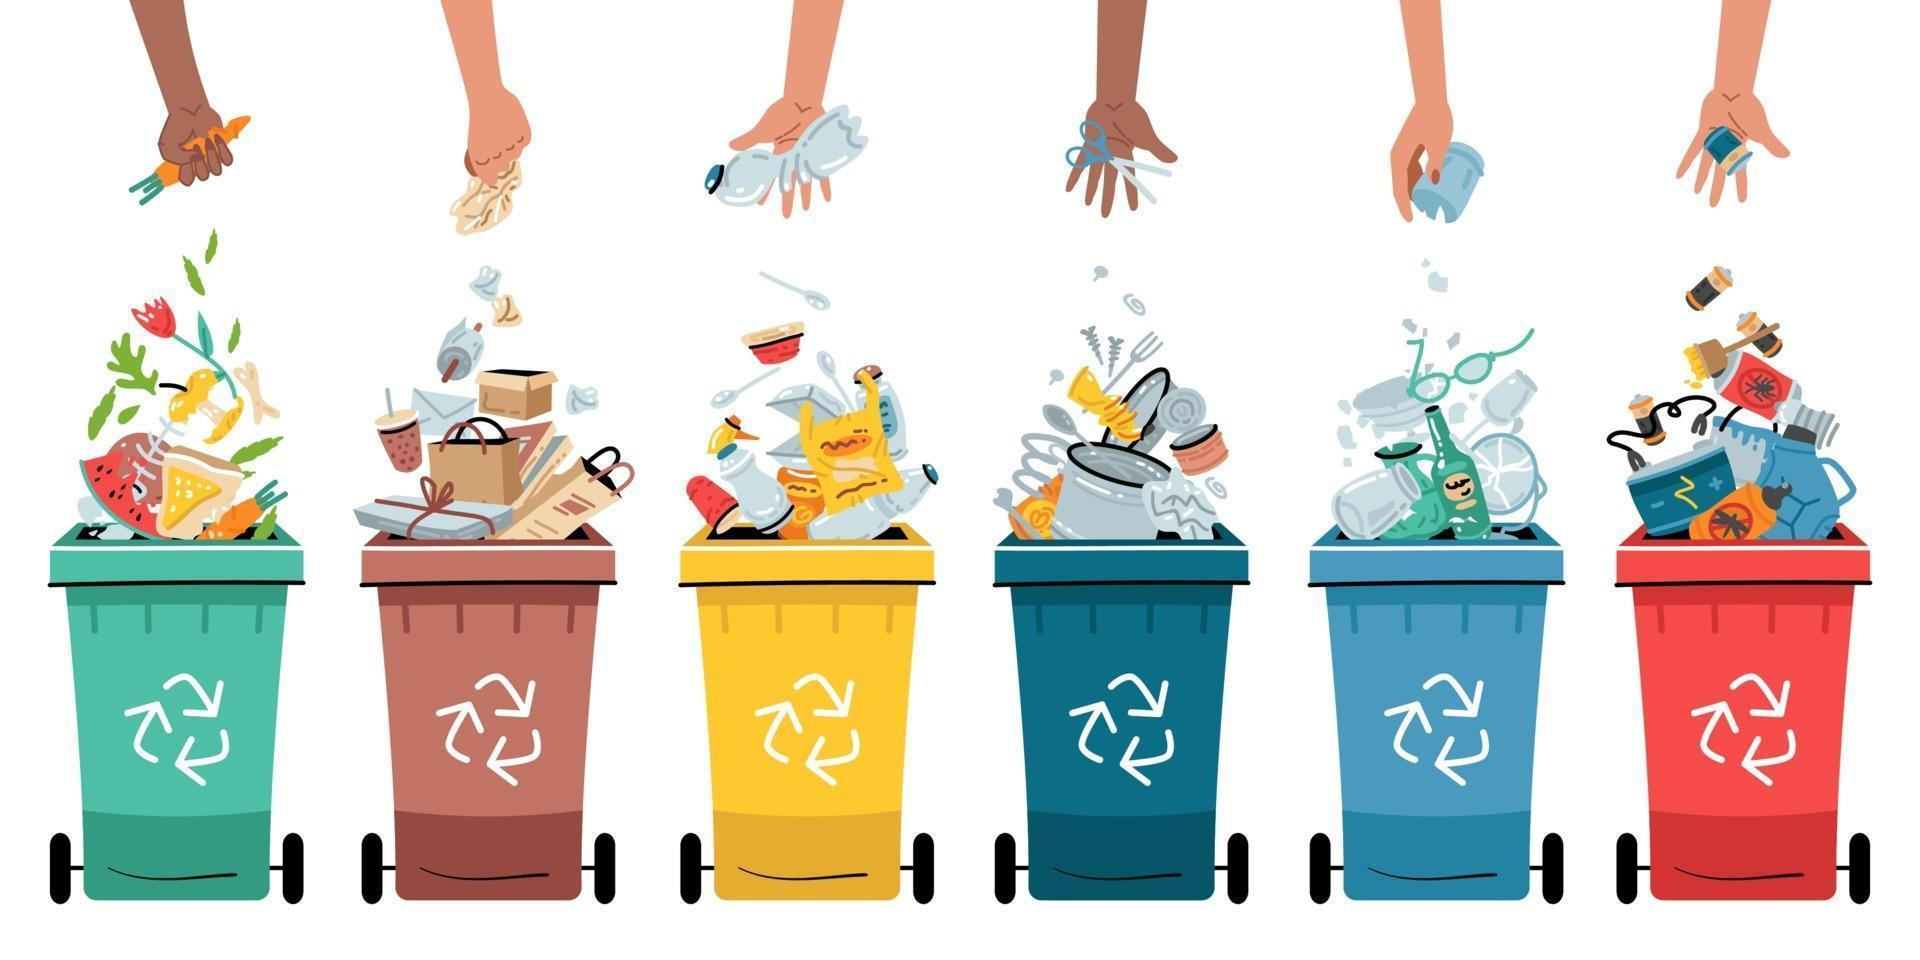 Waste collection, segregation and recycling illustration. vector